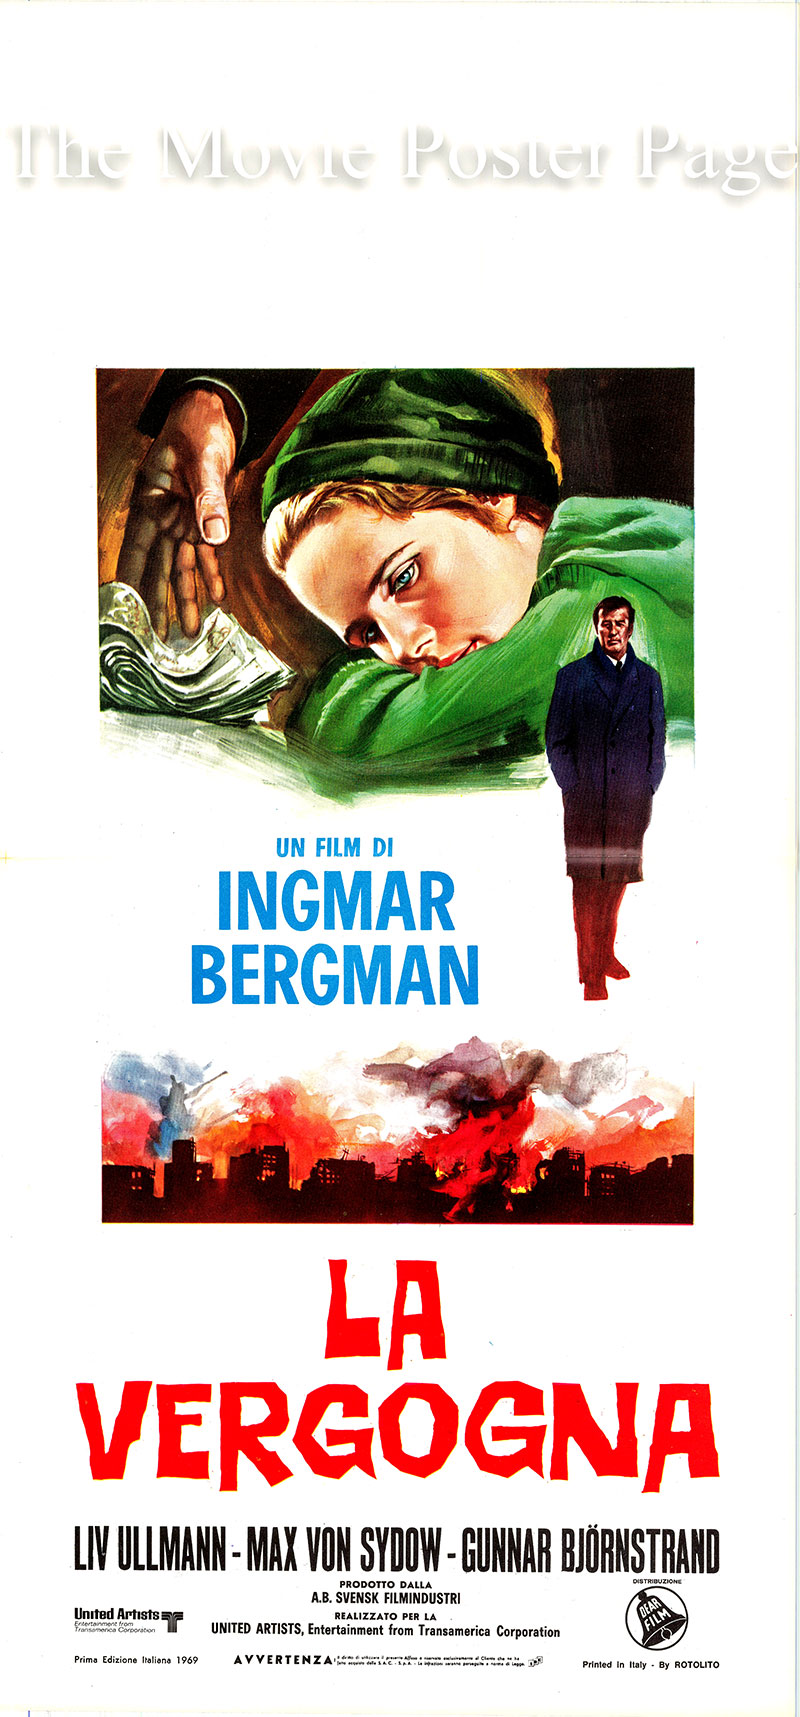 Pictured is an Italian locandina poster for a 1969 rerelease of the 1968 film <i>Shame</i> written and directed by Ingmar Bergman and starring Liv Ullmann as Eva Rosenberg.